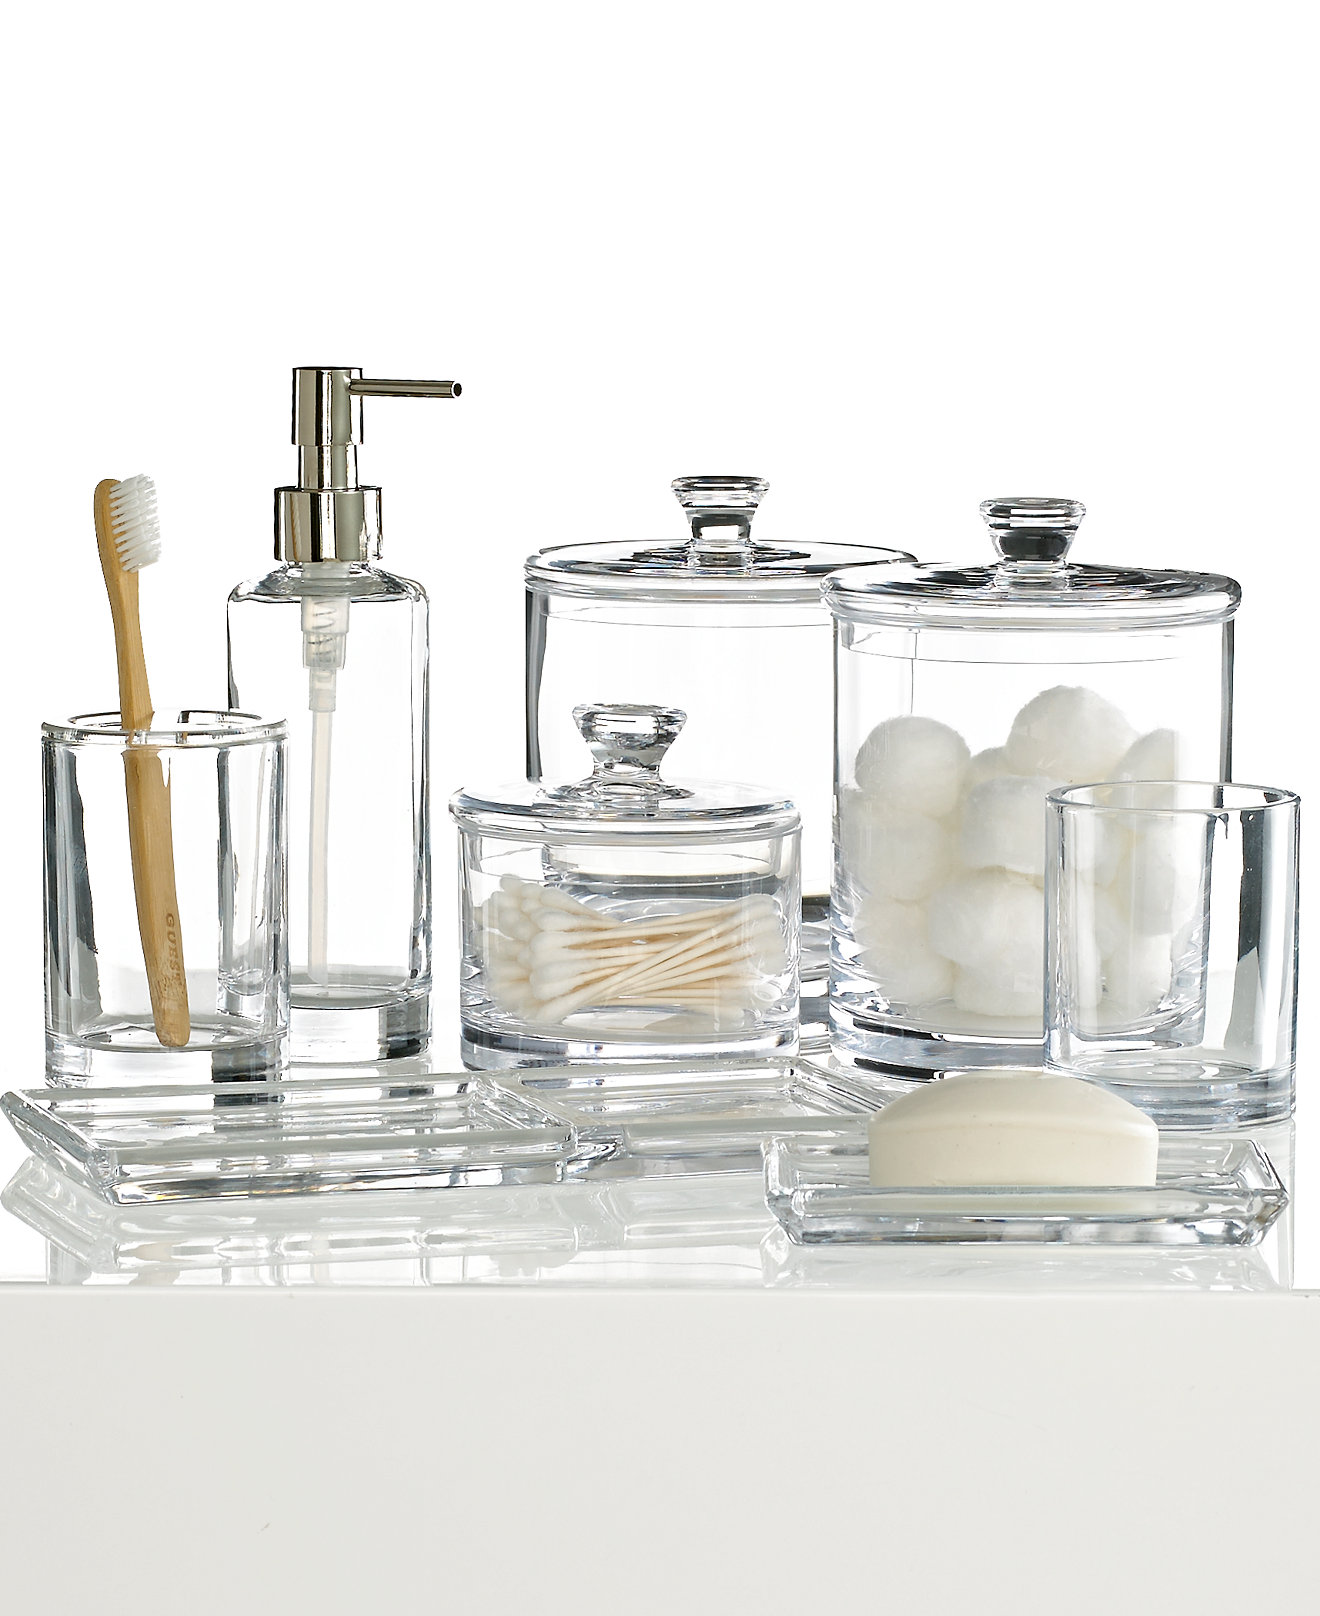 Bathroom accessories home for Bathroom accessories online australia